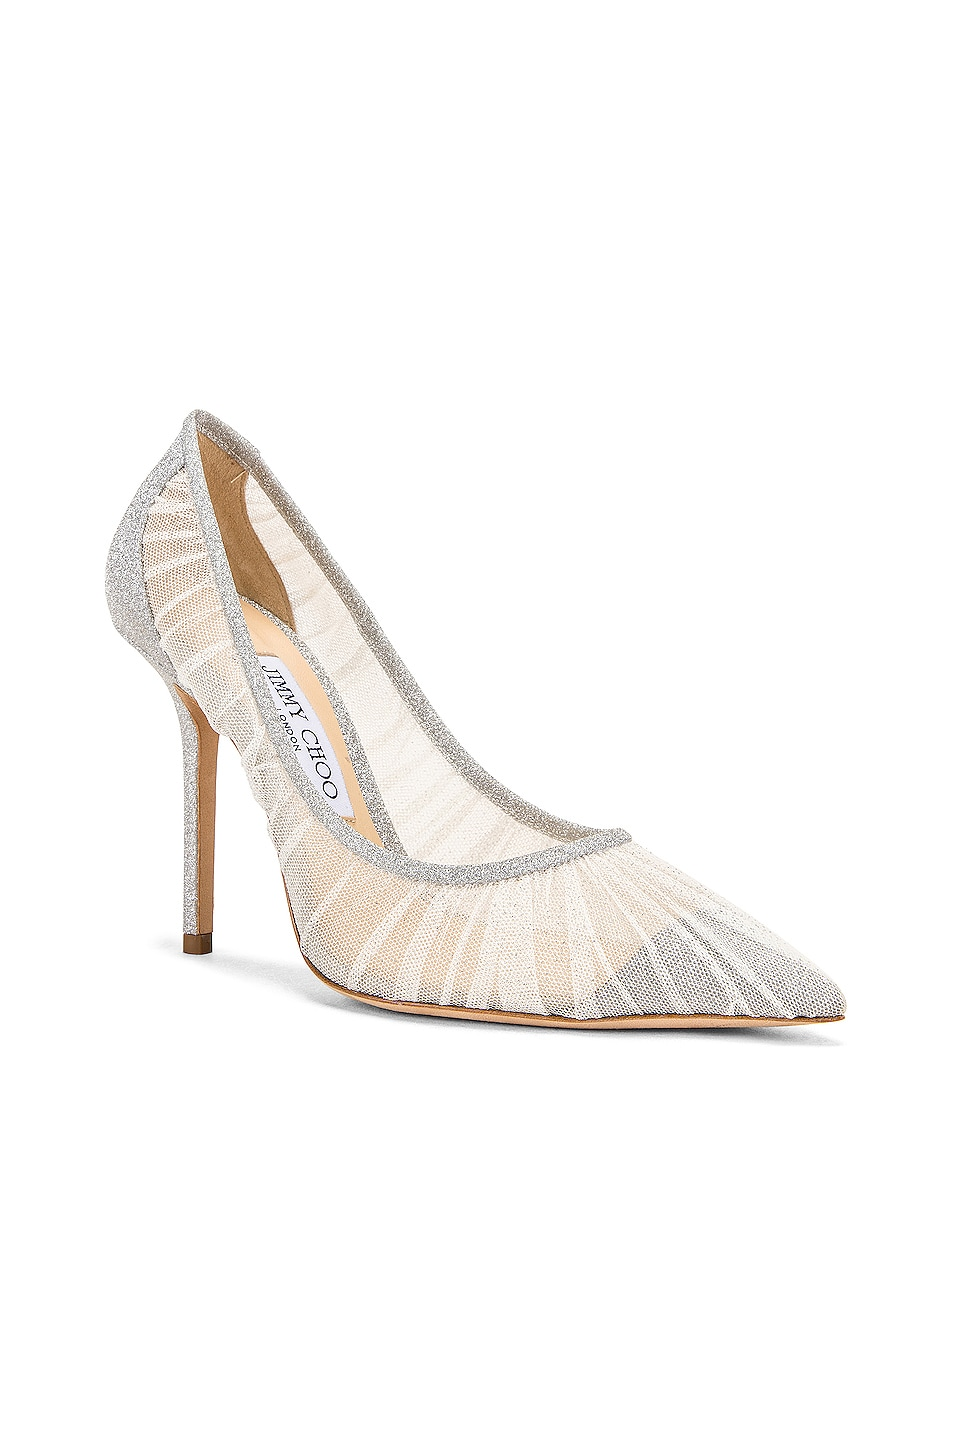 Image 2 of Jimmy Choo Love 100 Fine Glitter Heel in Ivory & Silver